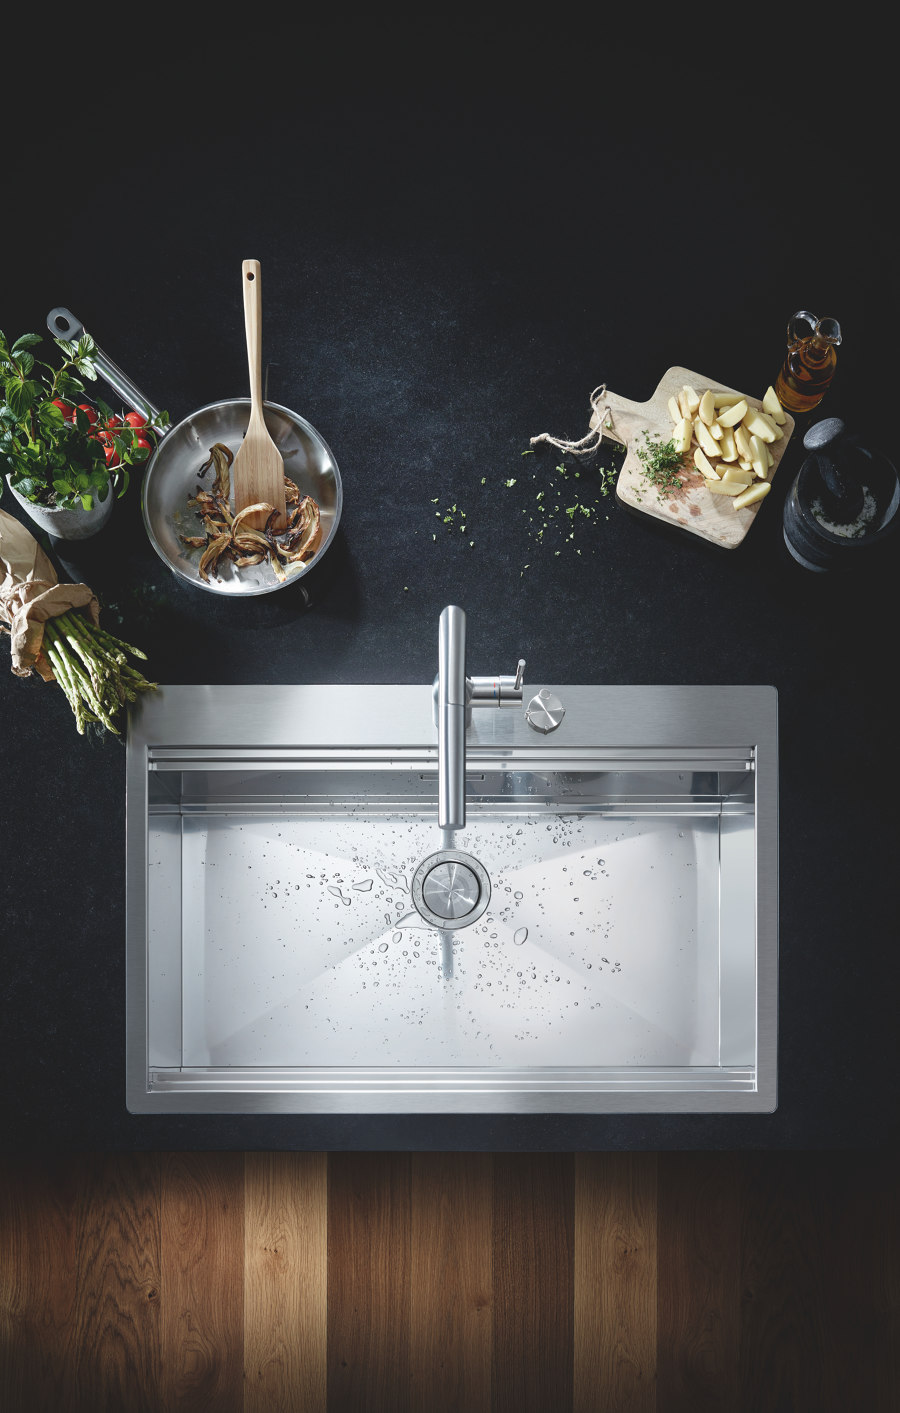 Let it sink in: GROHE | News